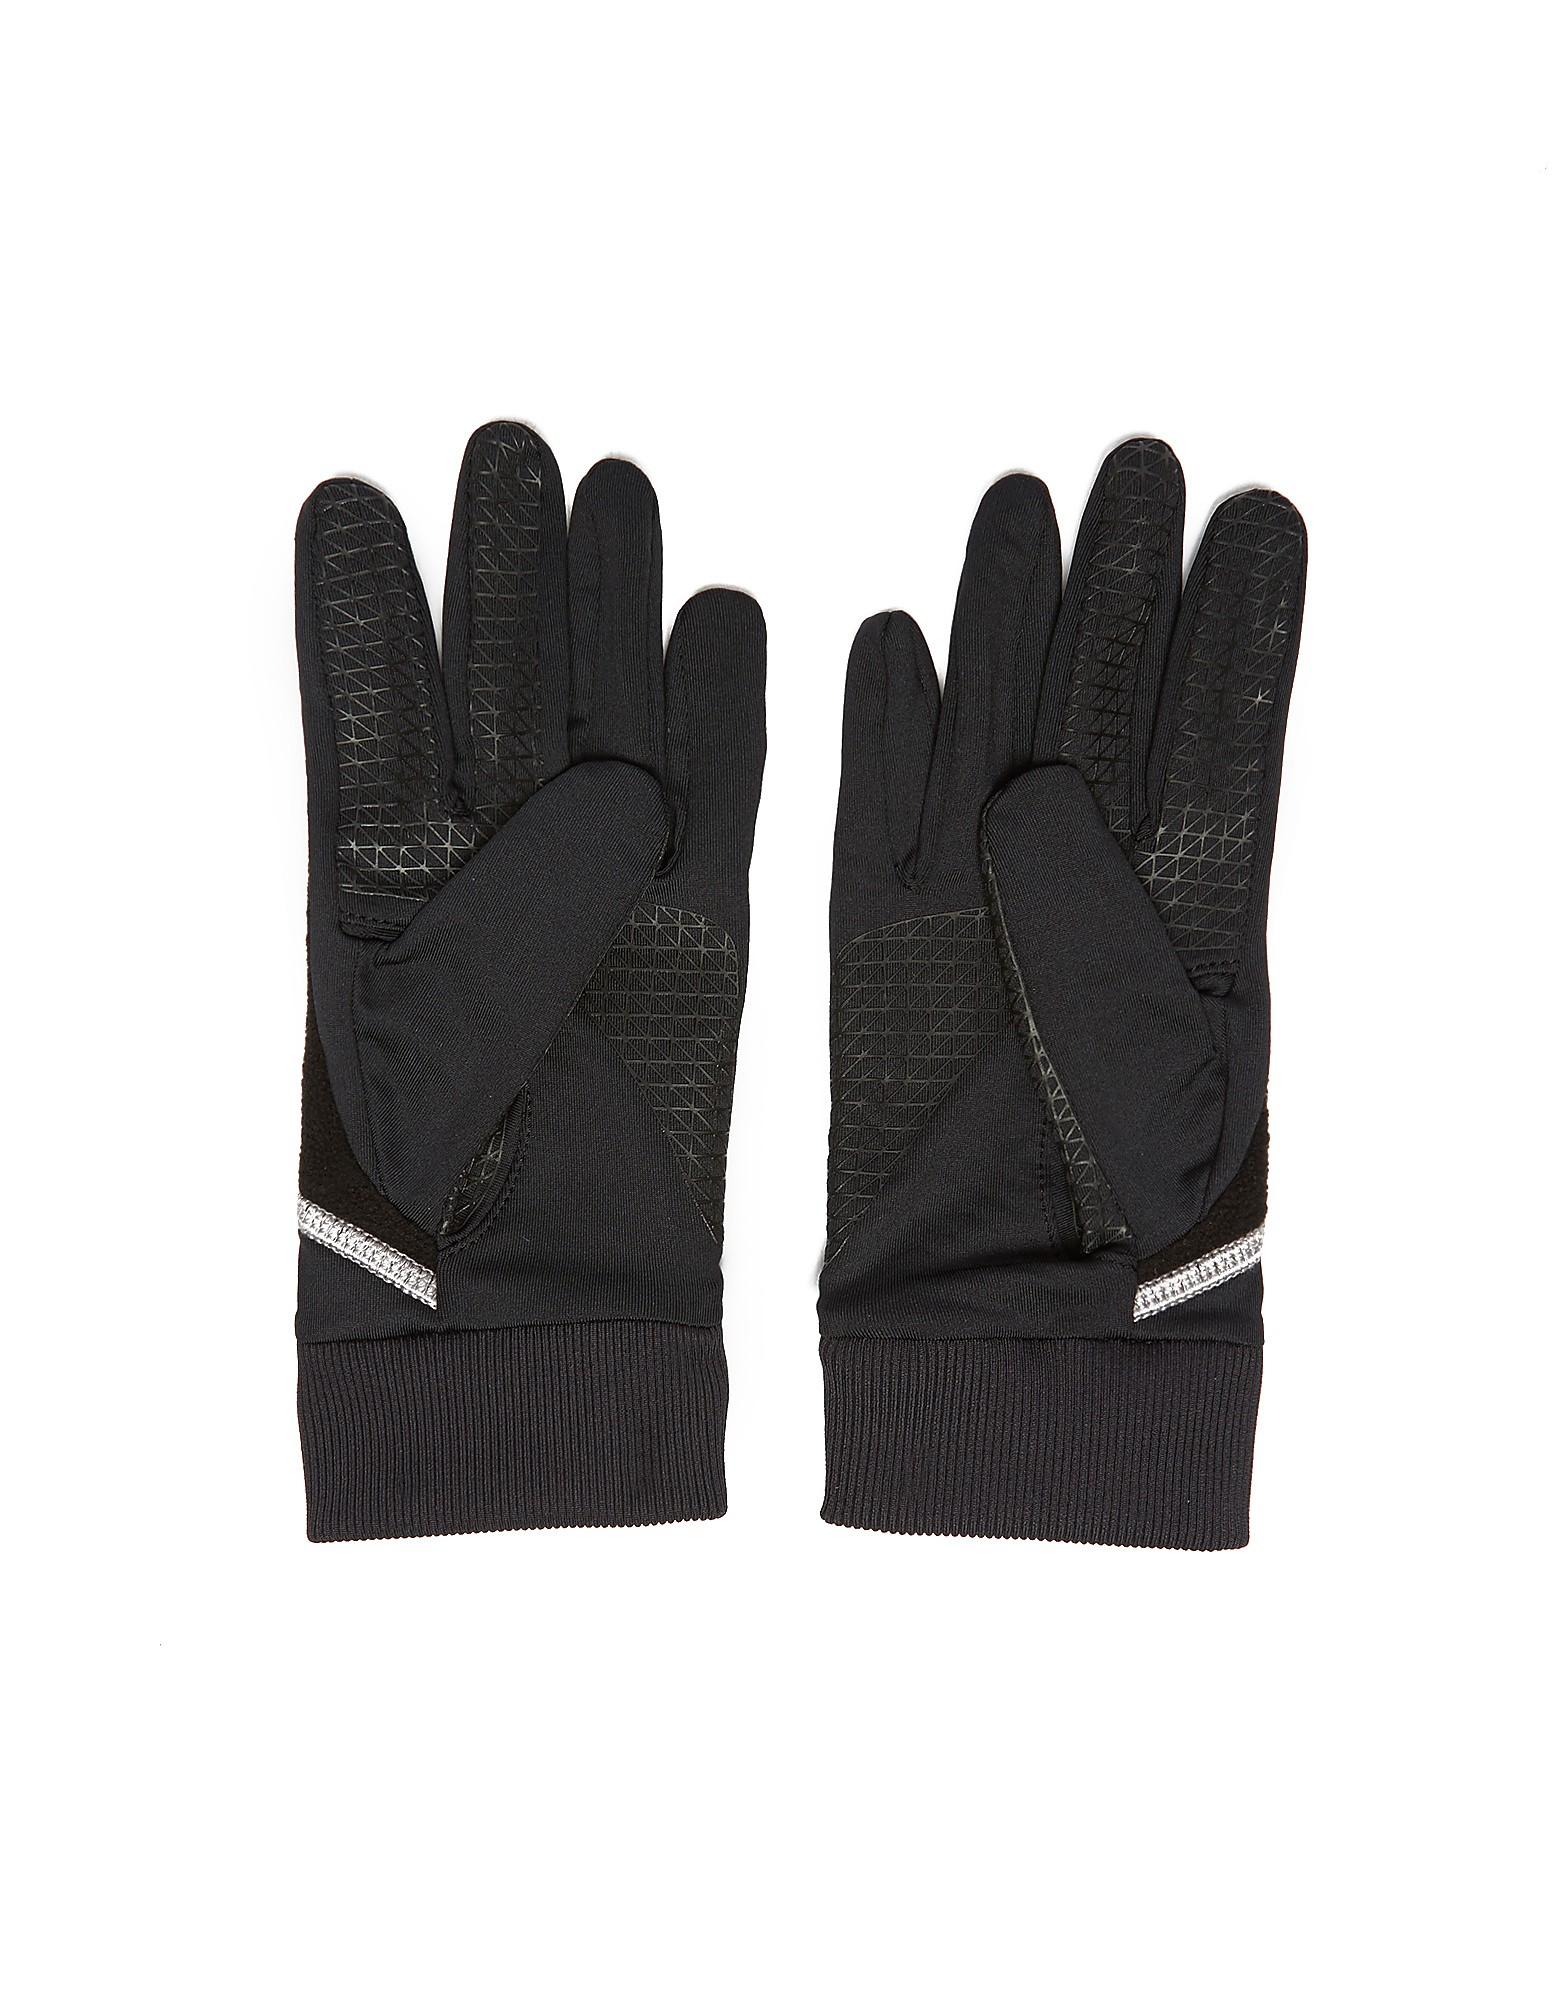 Under Armour Engage ColdGear Gloves